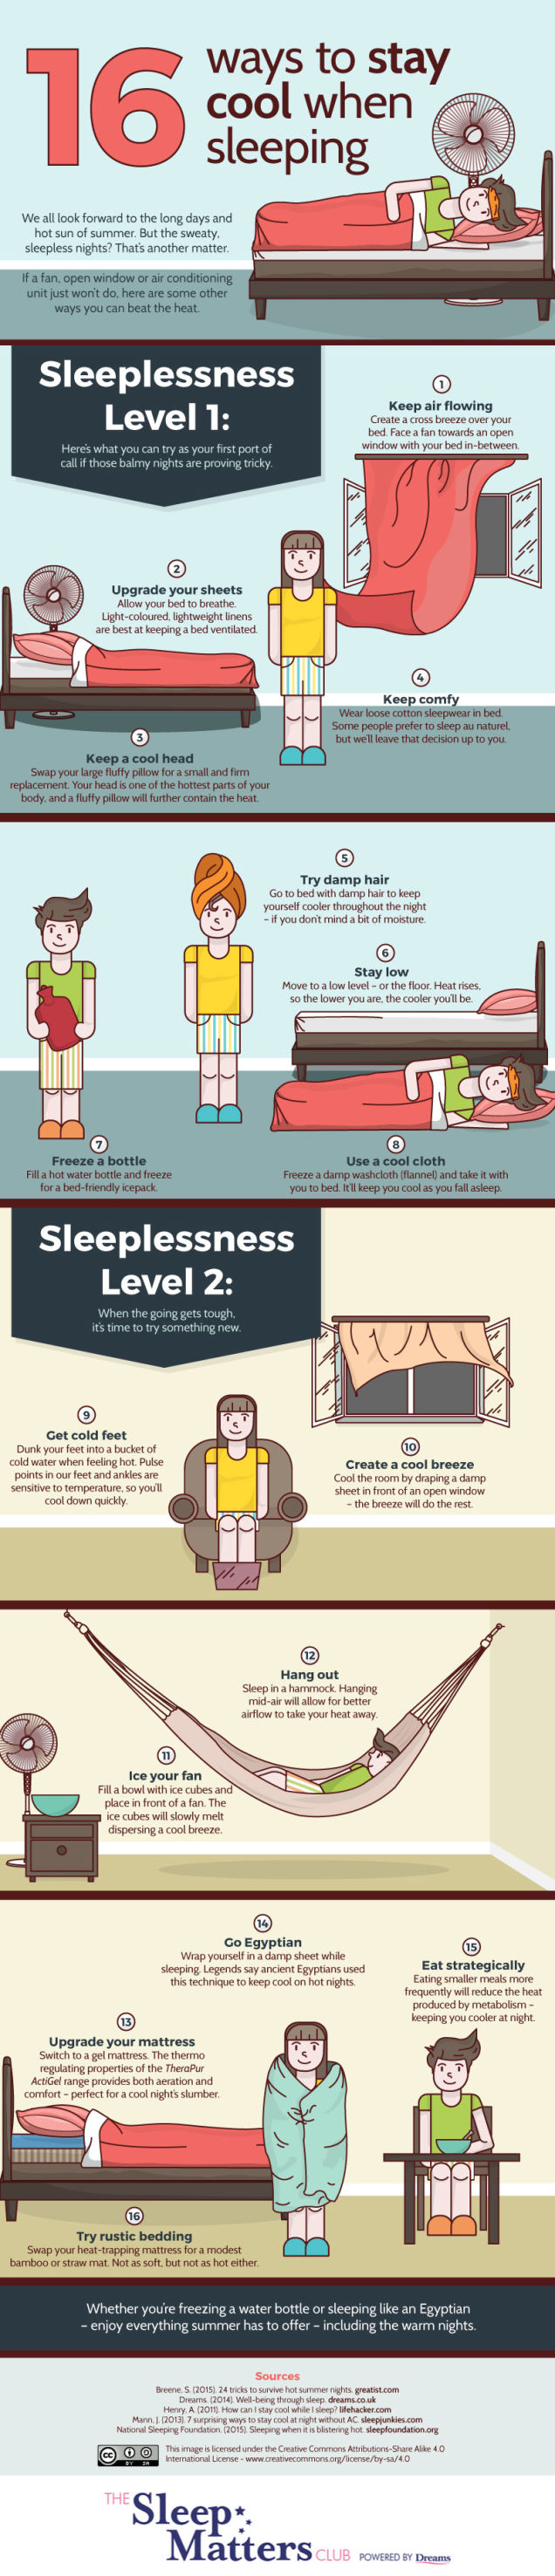 Sleep Matters Club - 16 Ways To Stay Cool When Sleeping Infographic